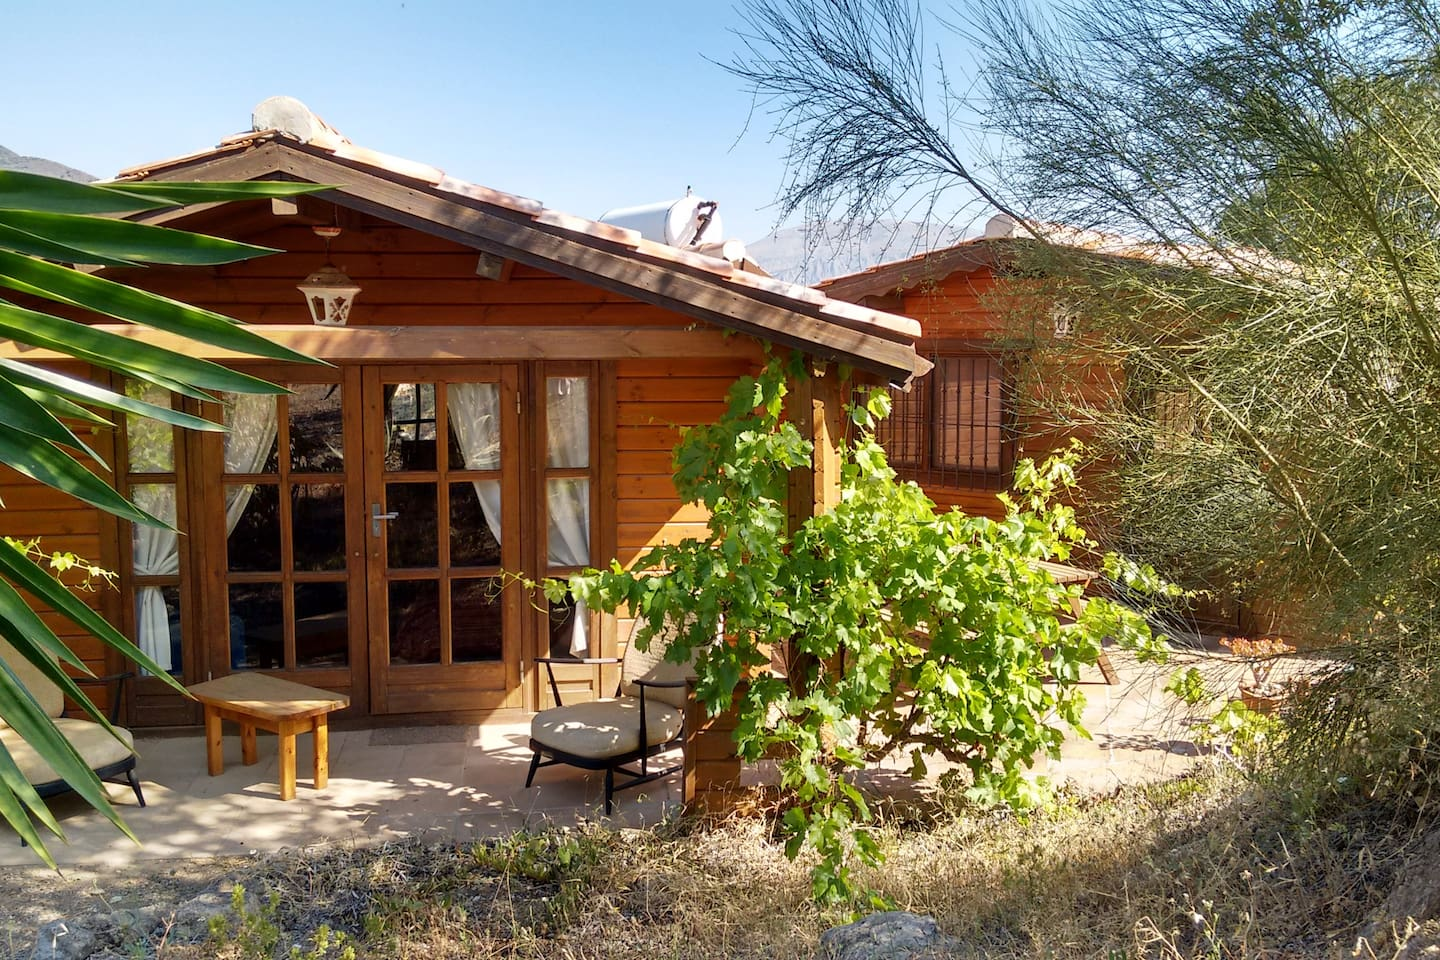 Cabana El Hacho is one of 2 cabanas at Finca La Piedra. It sleeps 2 persons but an extra bed/cot can be added. Please ask for price and what is available. Owners live on site.